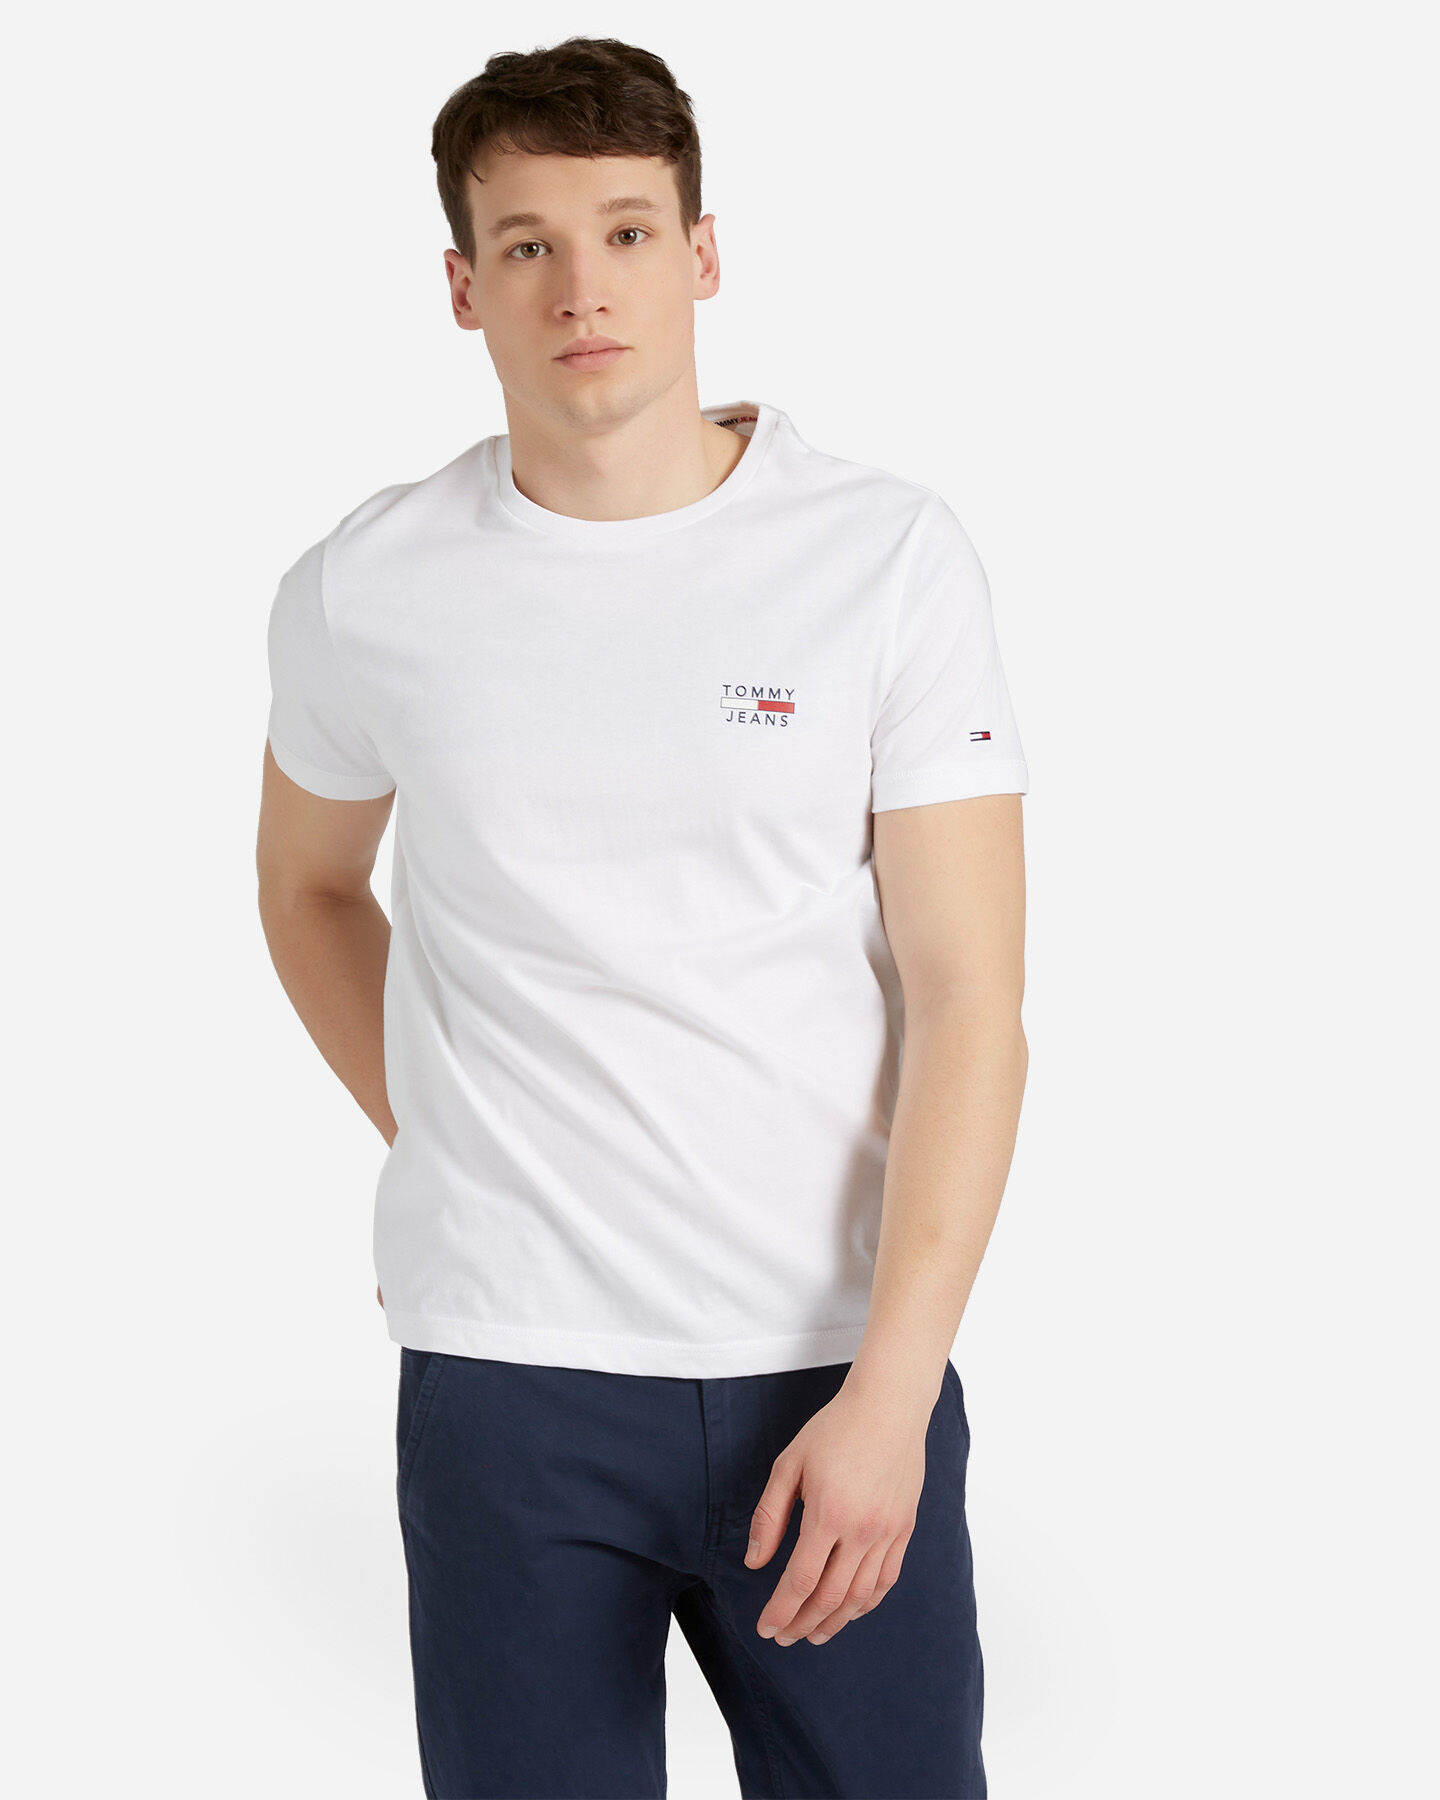 T-Shirt TOMMY HILFIGER SMALL LOGO M S4088735 scatto 0